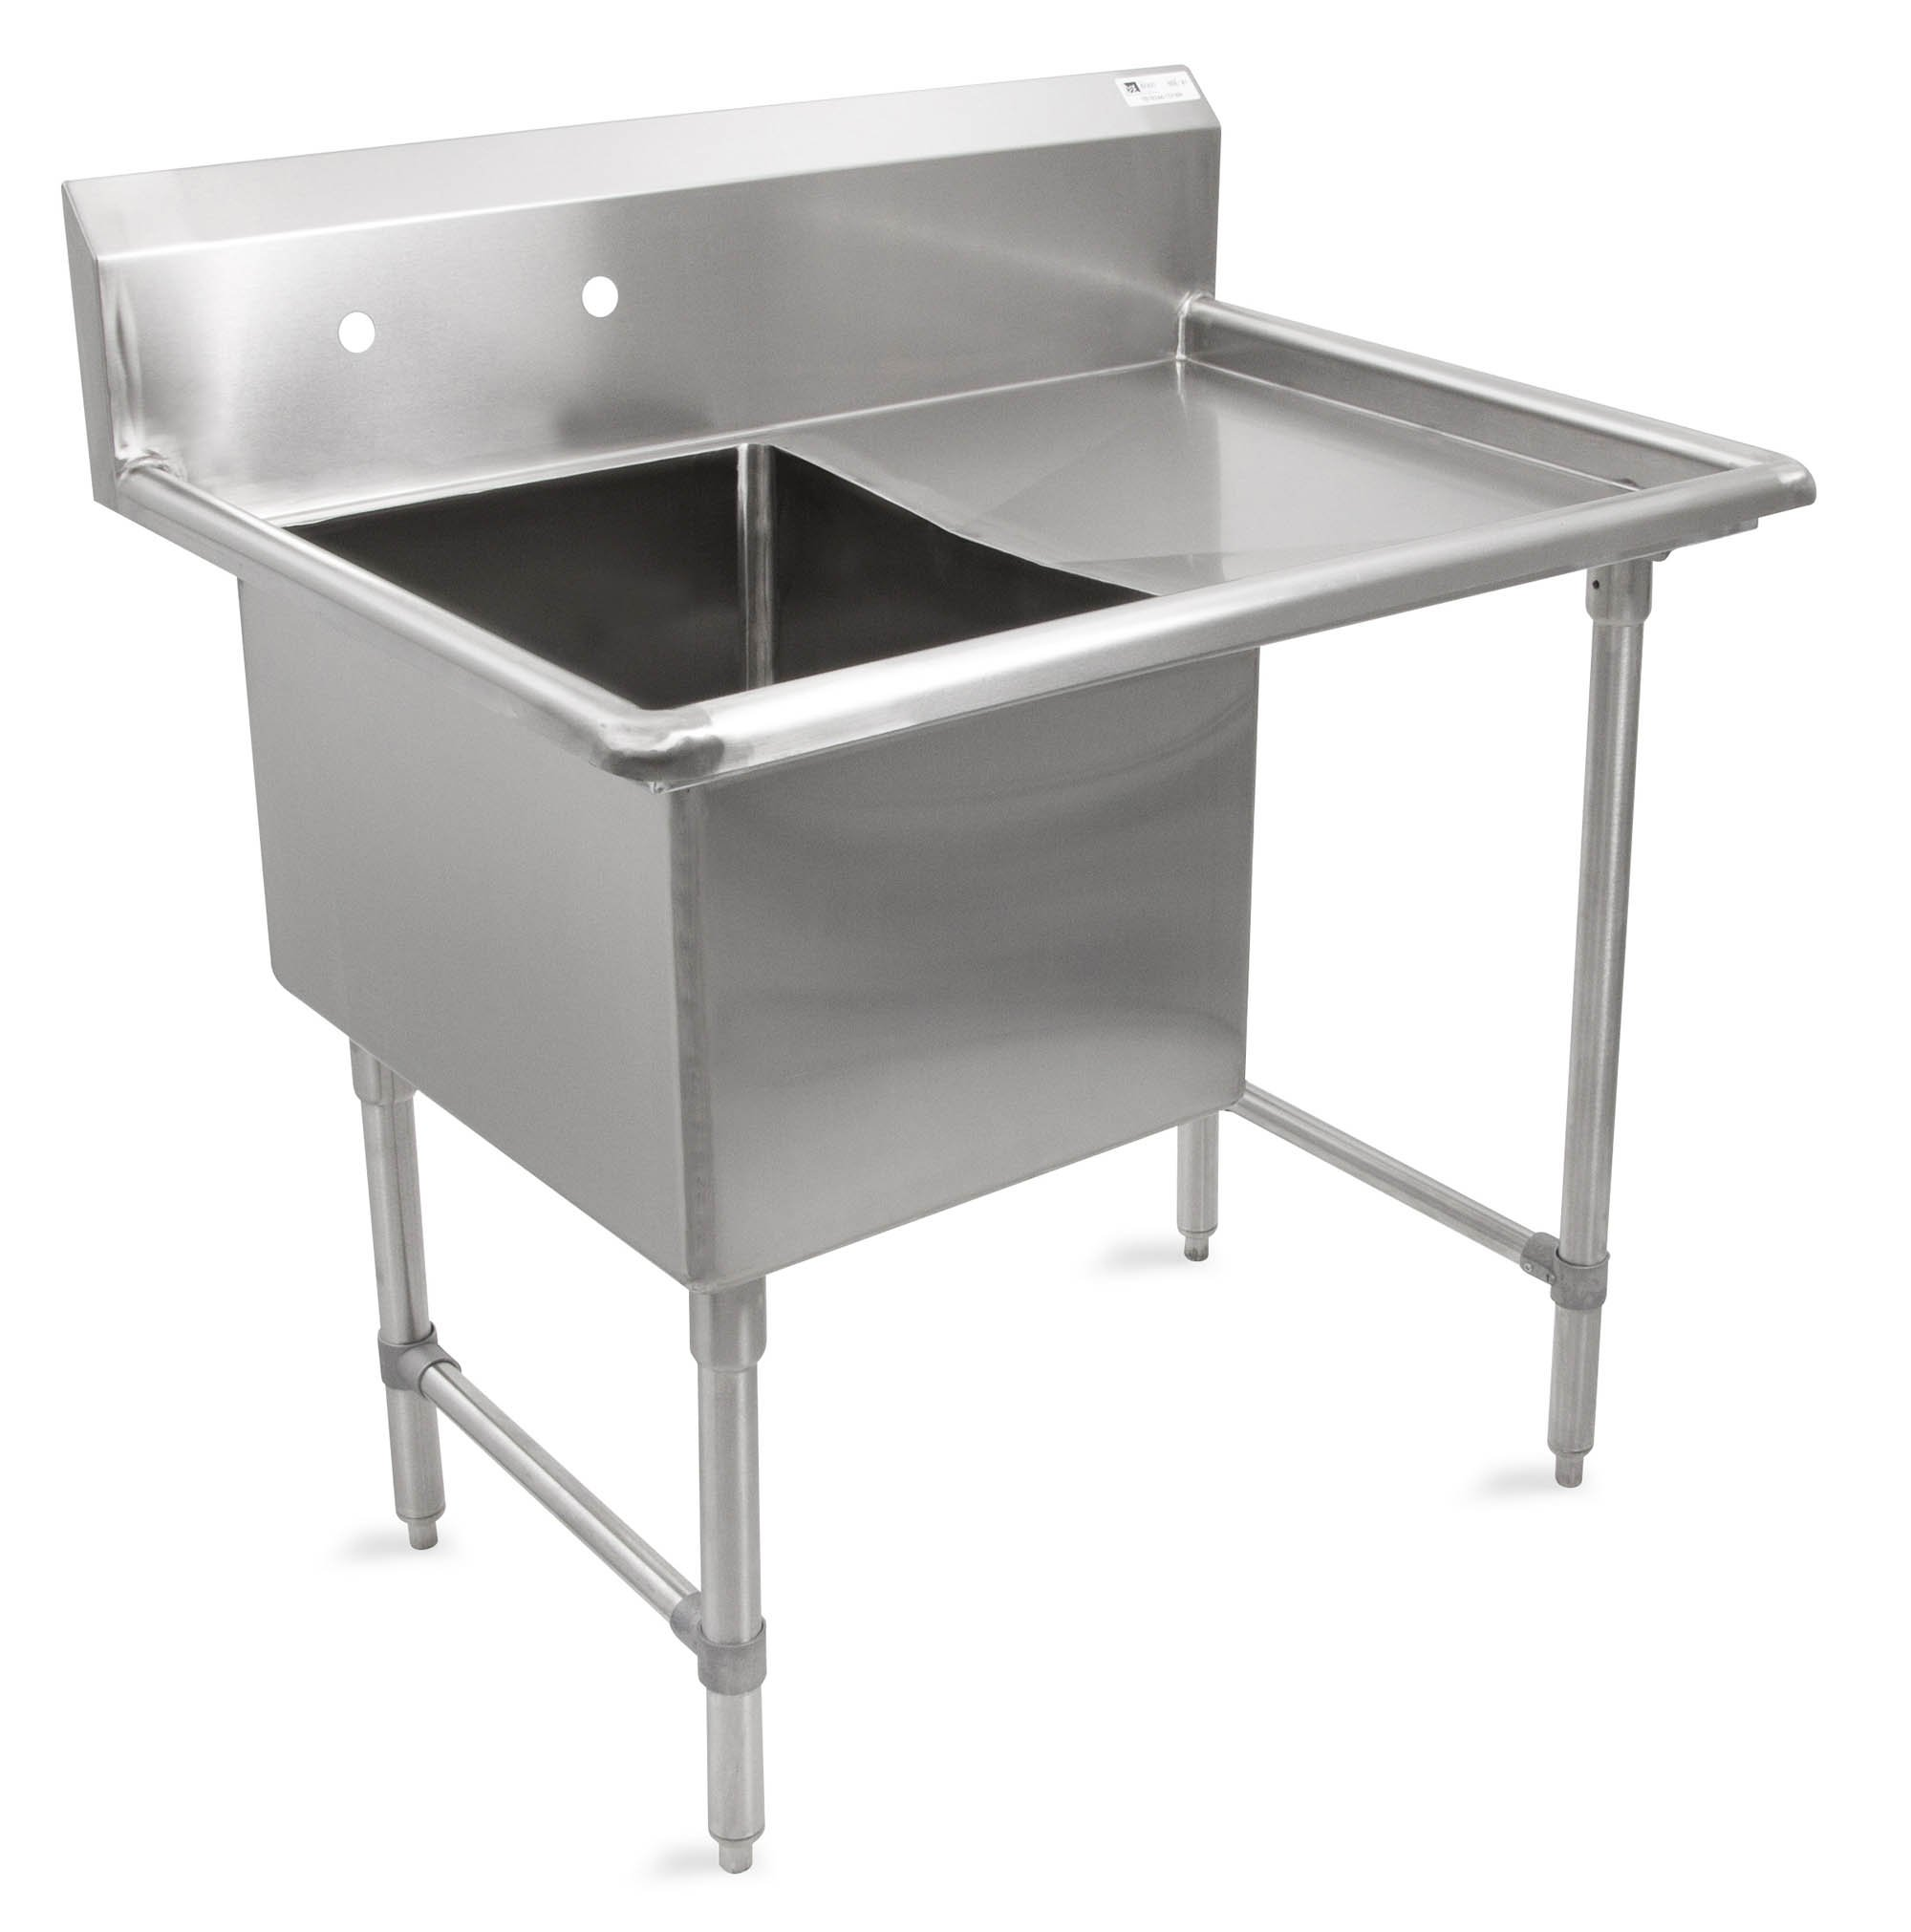 John Boos B Series Stainless Steel Sink, 14'' Deep Bowl, 1 Compartment, 24'' Right Hand Side Drainboard, 52'' Length x 29-1/2'' Width